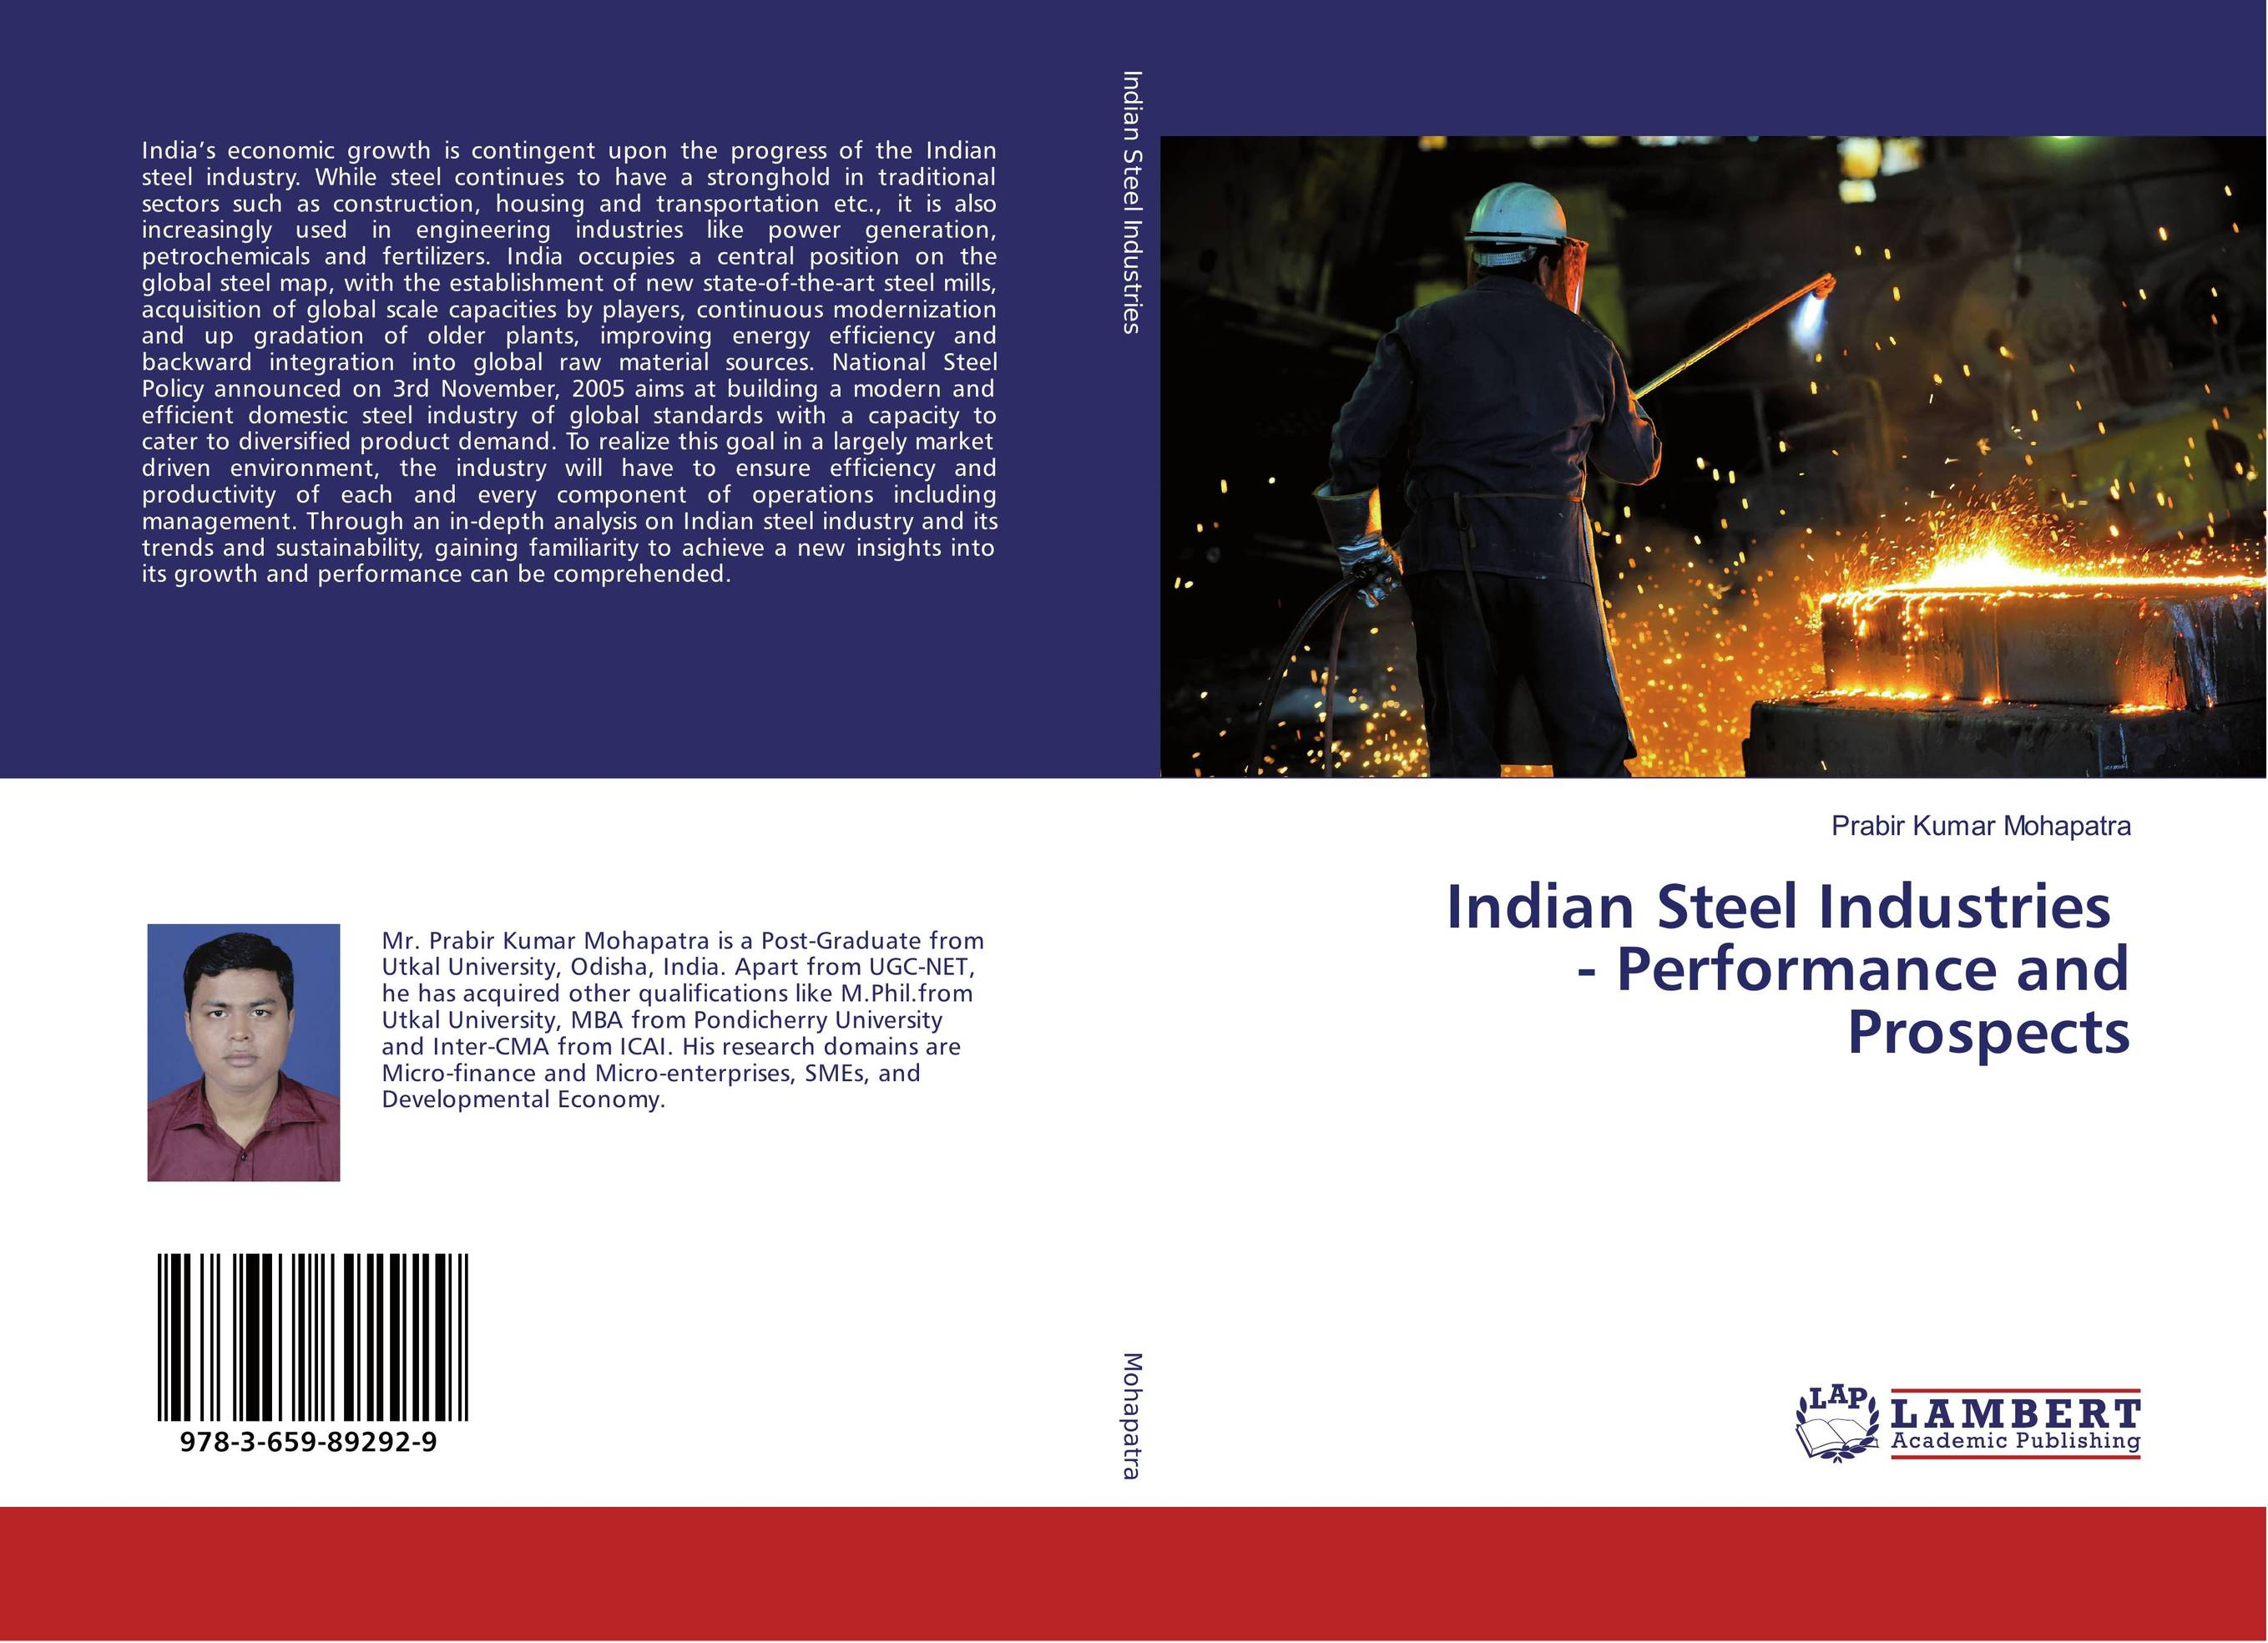 Indian Steel Industries - Performance and Prospects indian steel industries performance and prospects